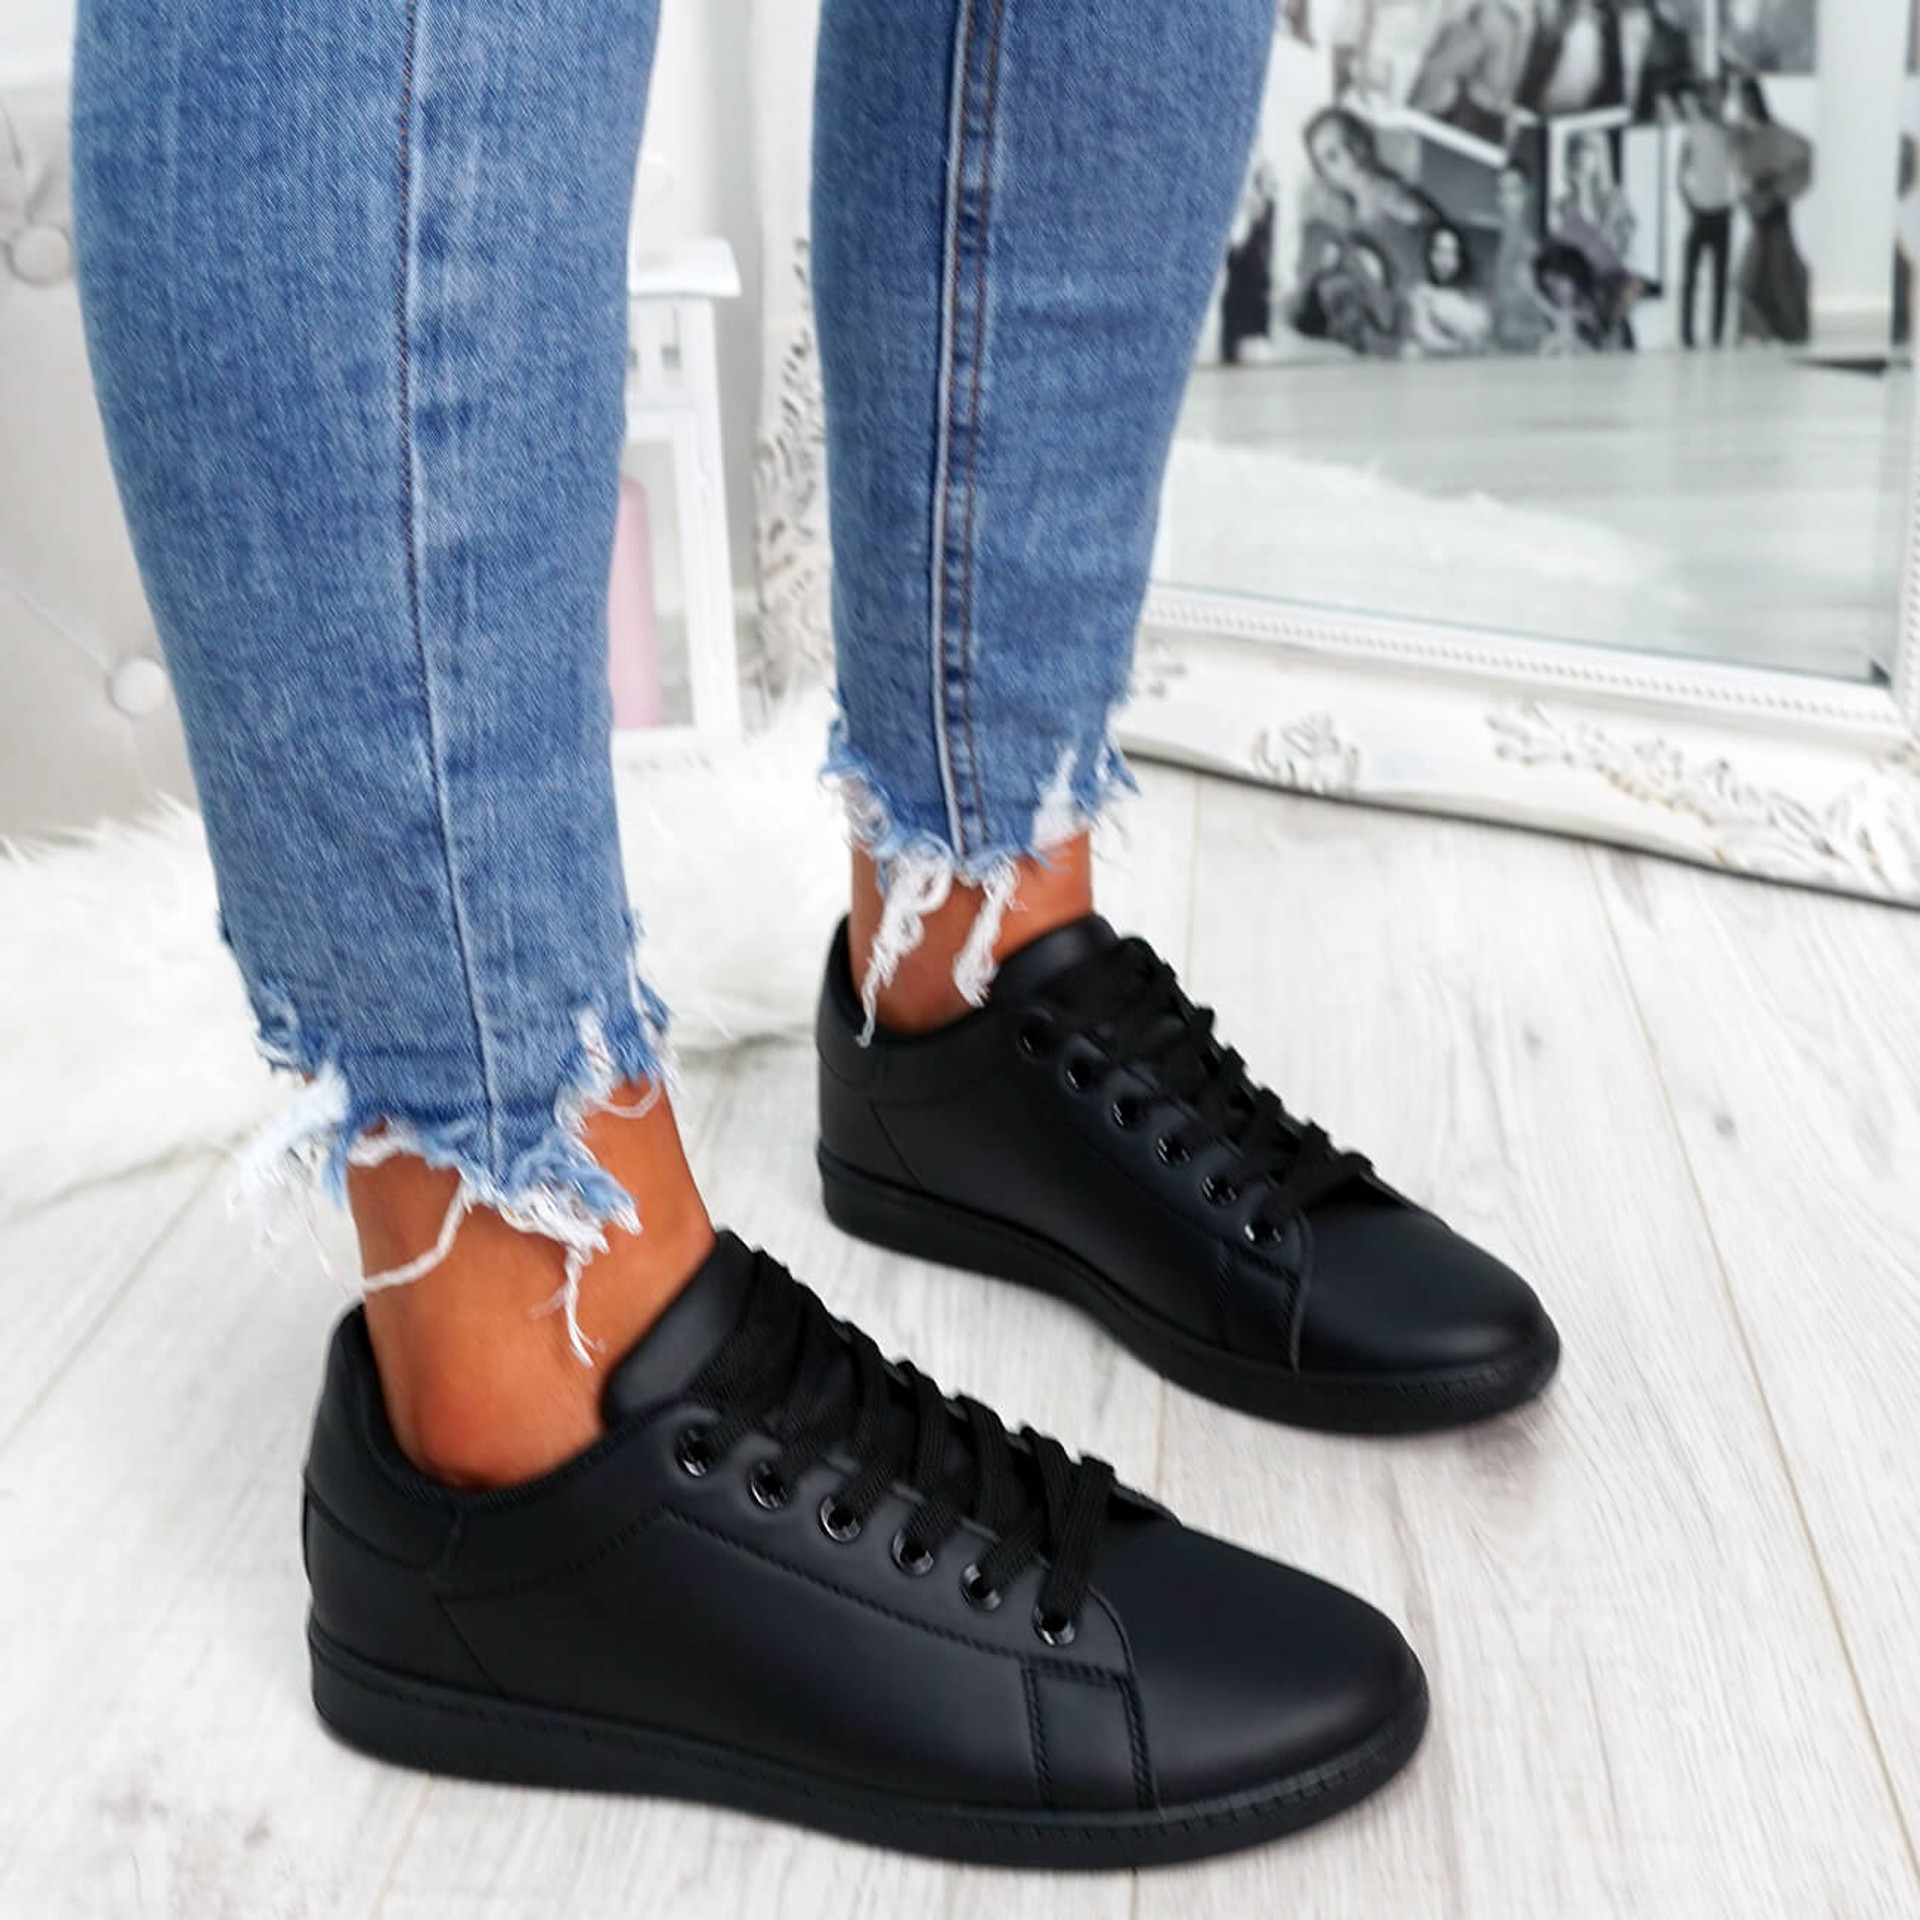 Black lace-up trainers for womens size uk 3 4 5 6 7 8